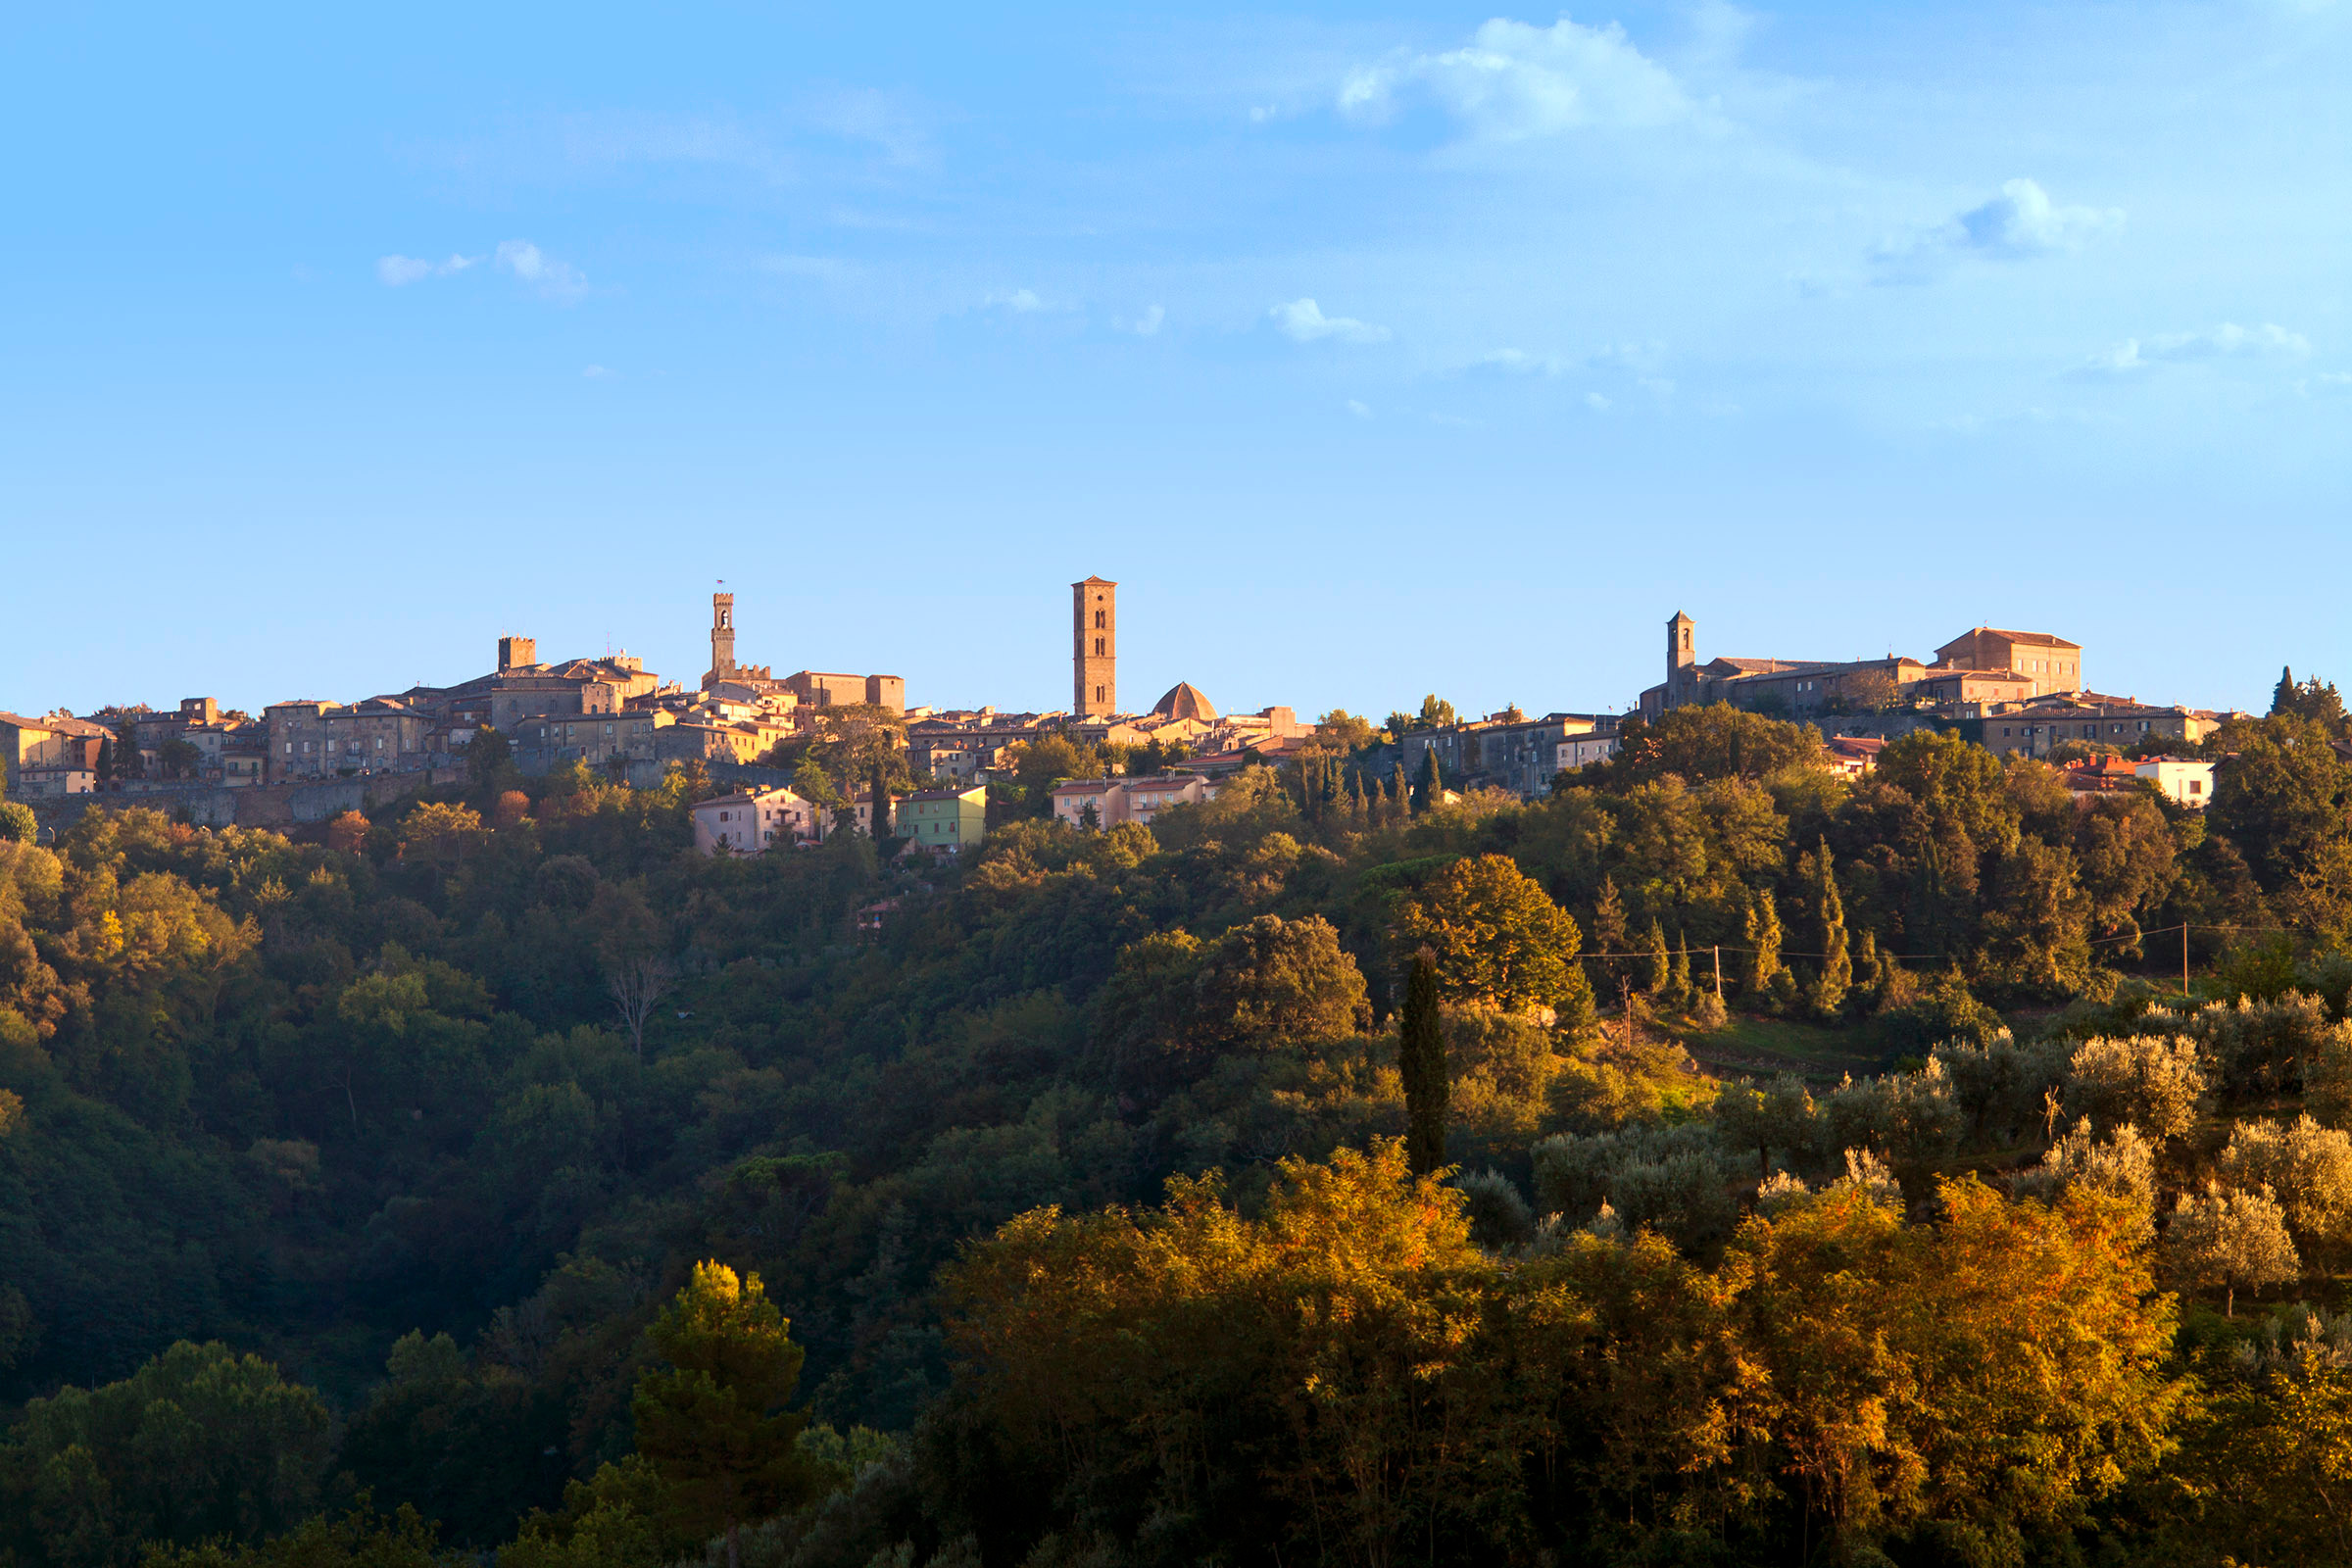 The beautiful Tuscan hilltop town of Volterra